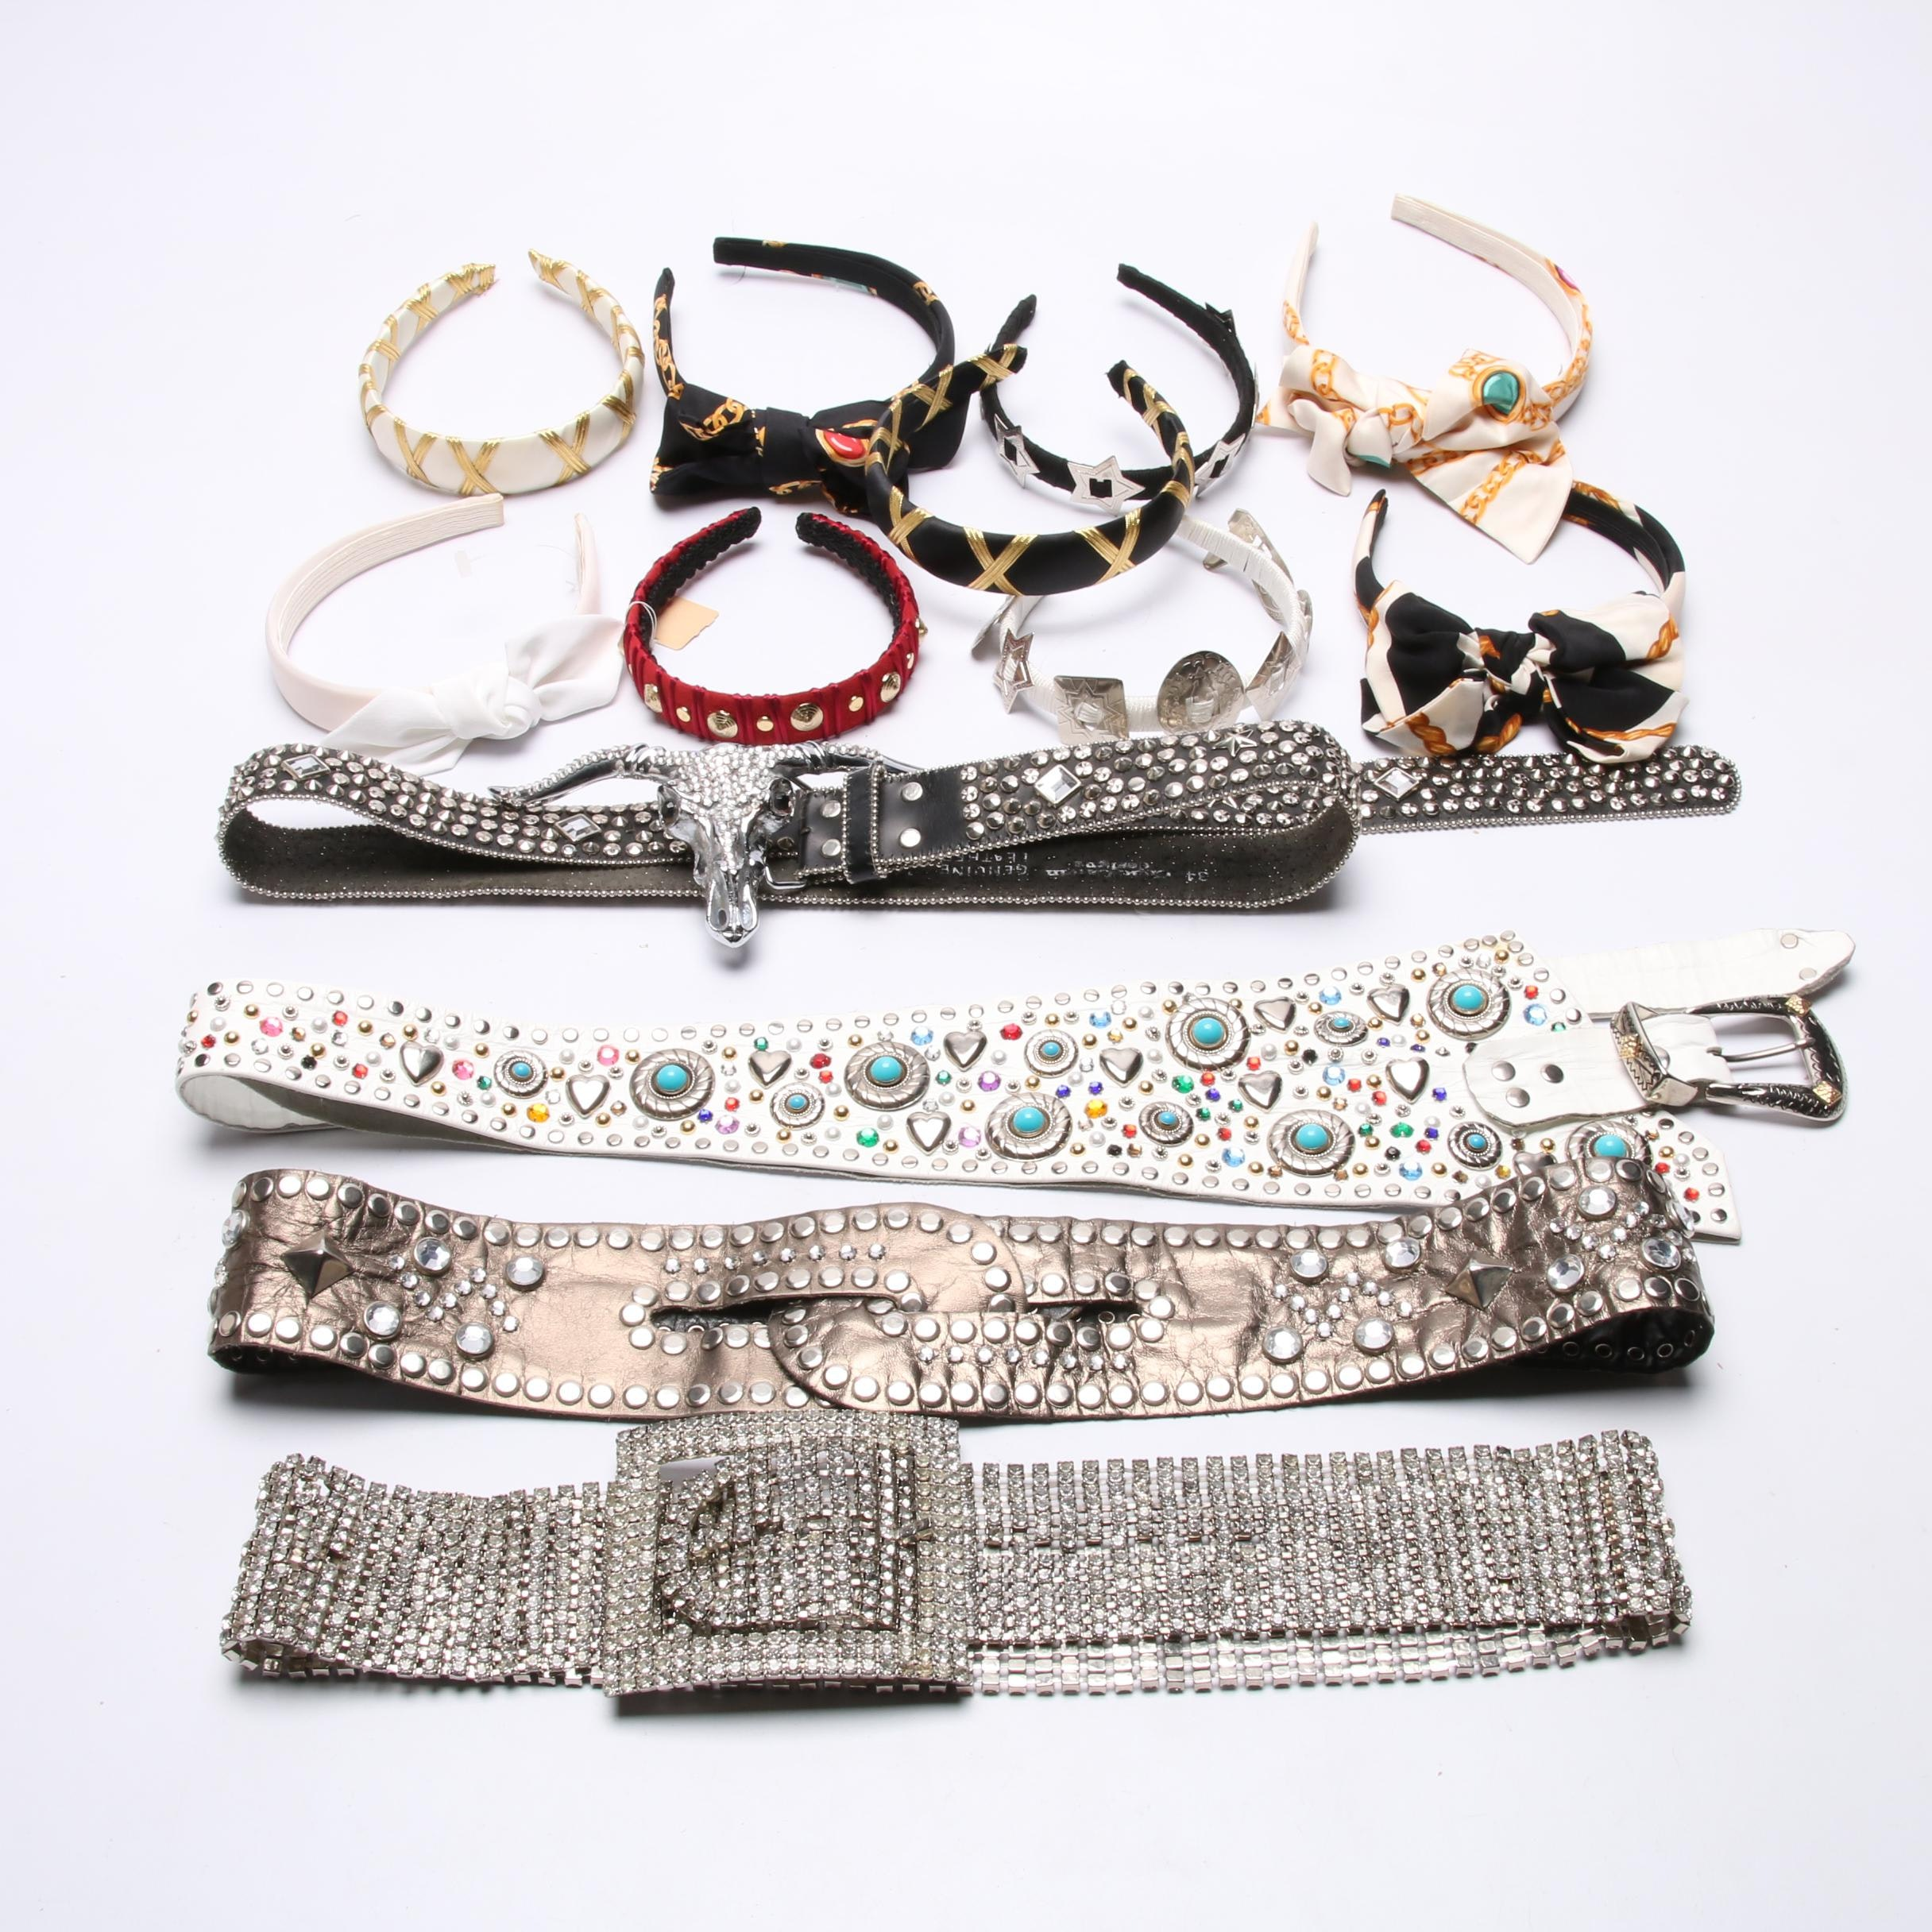 Deborah Rhodes, Espy, Colette Malouf Headbands and Leather Jewel Accented Belts